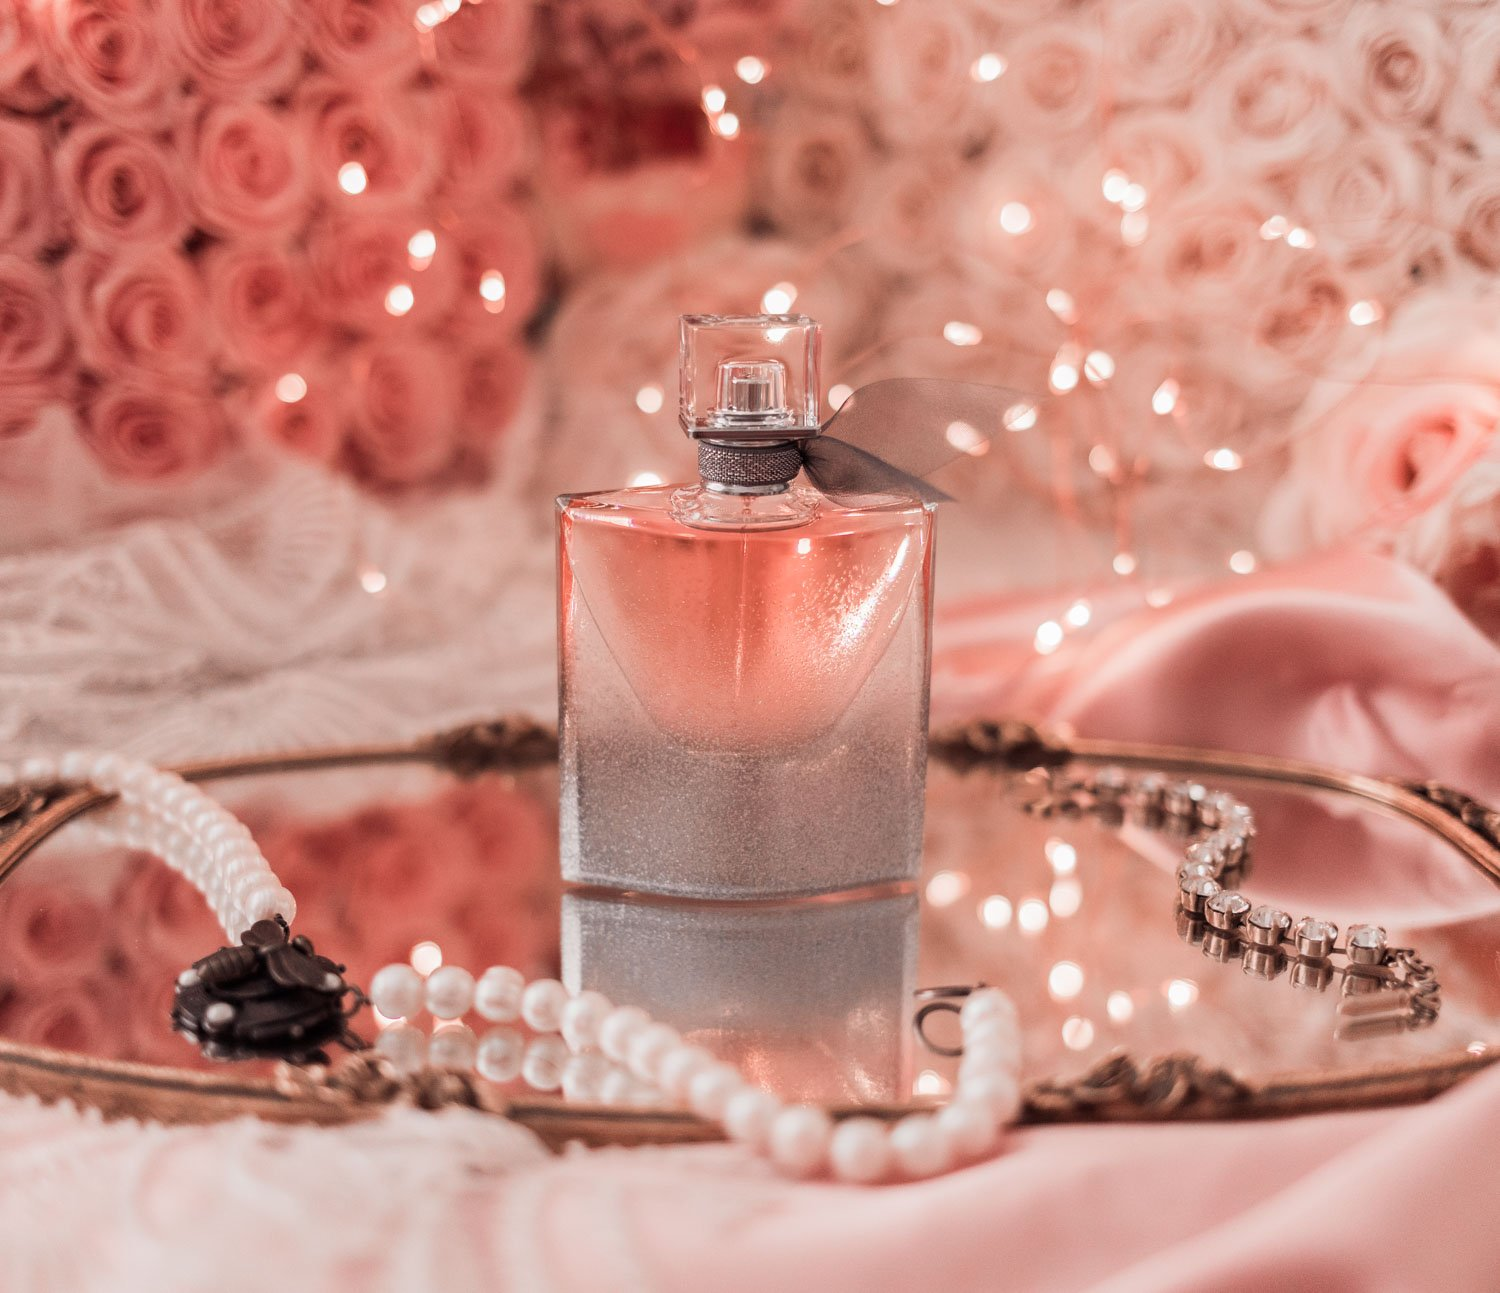 Fashion Blogger Elizabeth Hugen of Lizzie in Lace shares her Pretty Pink Holiday Gift Guide including this Lancome La Vie est Belle fragrance